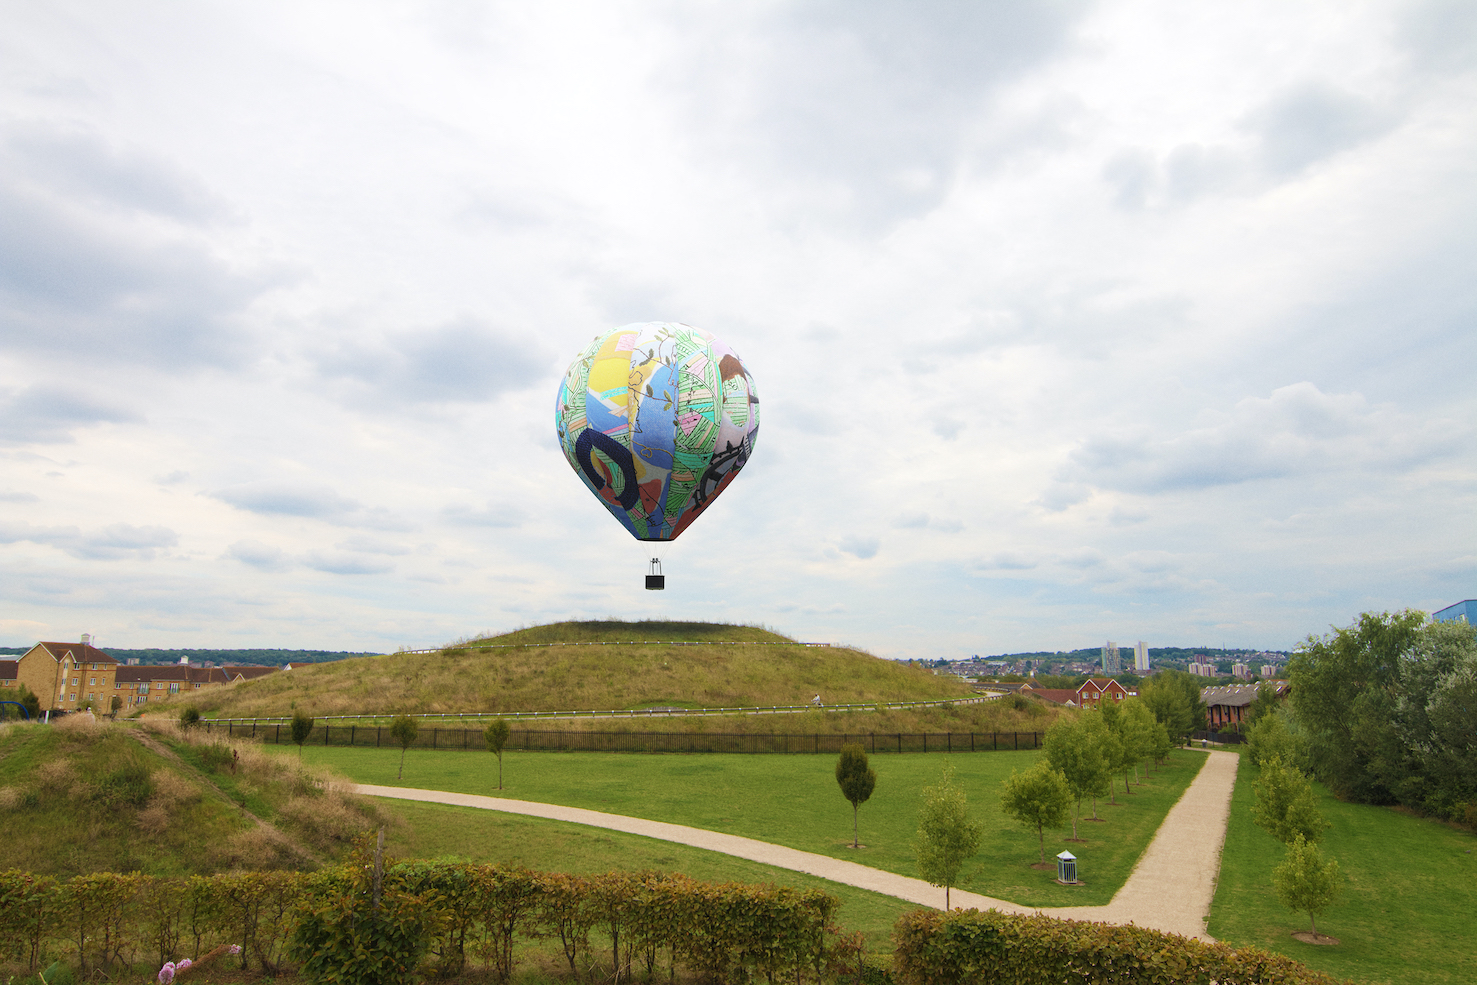 Balloon chosen to tell Thamesmead's cultural story